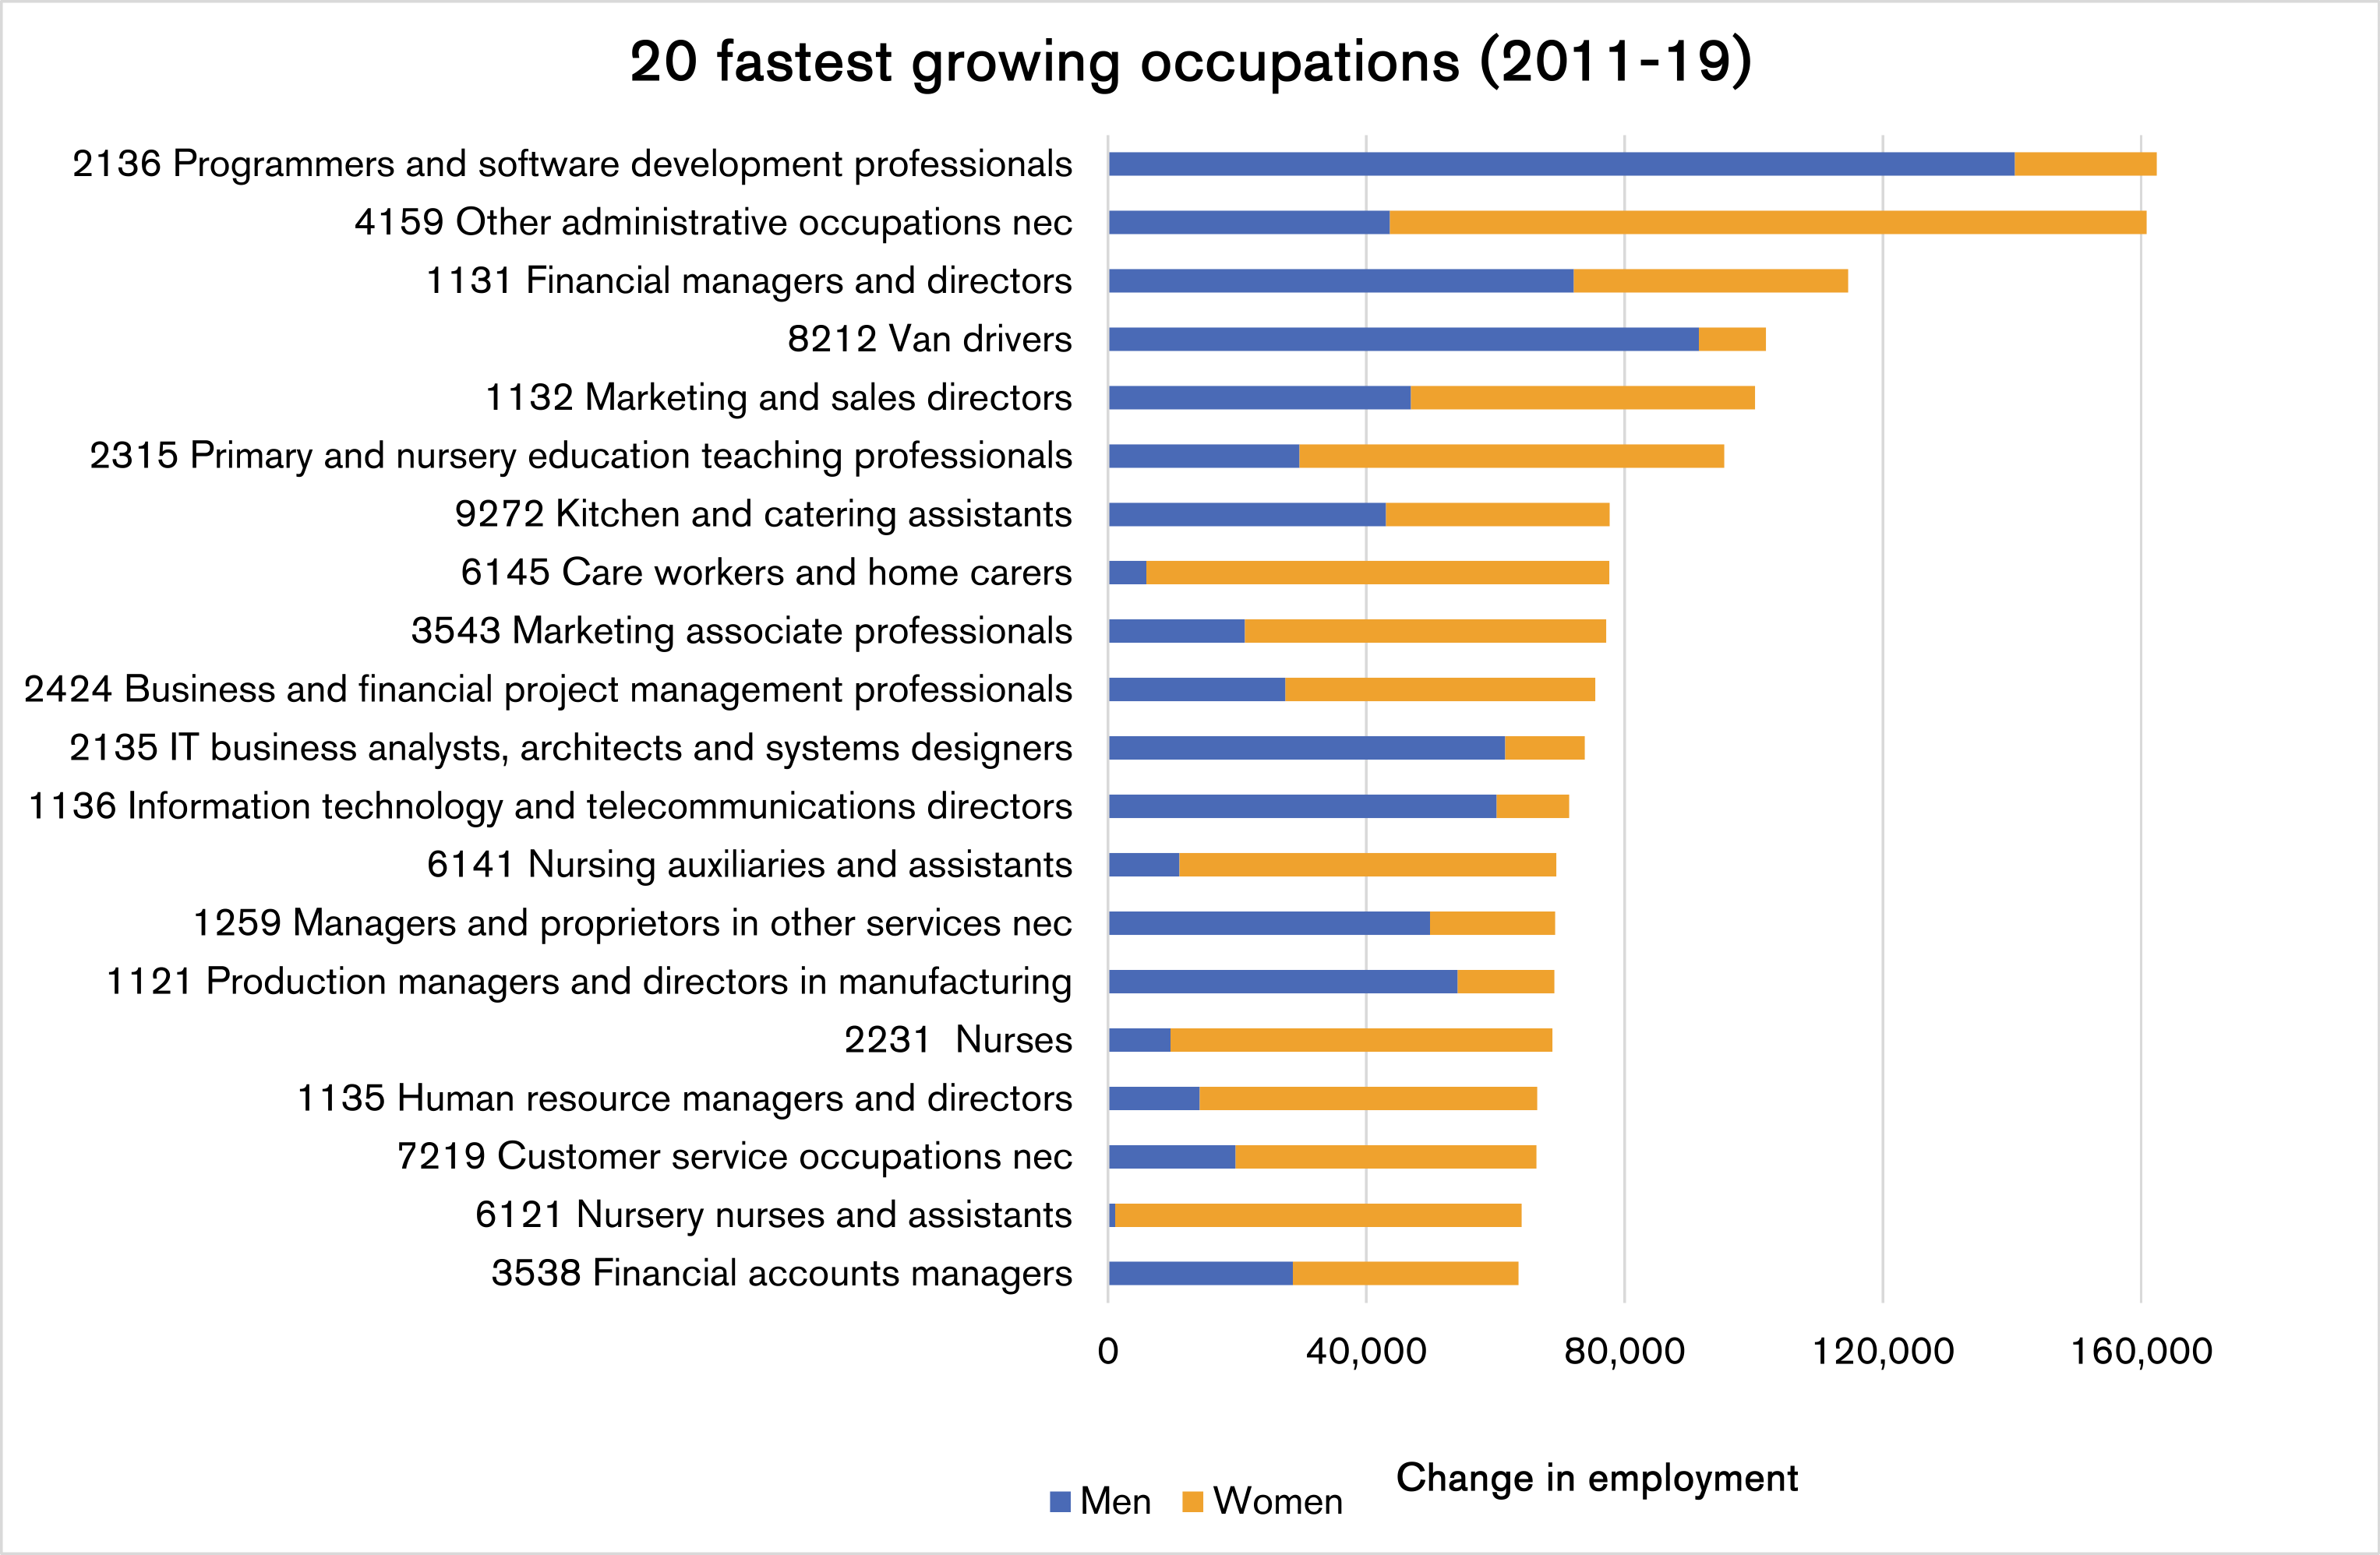 20 fastest growing occupations (2011-19)